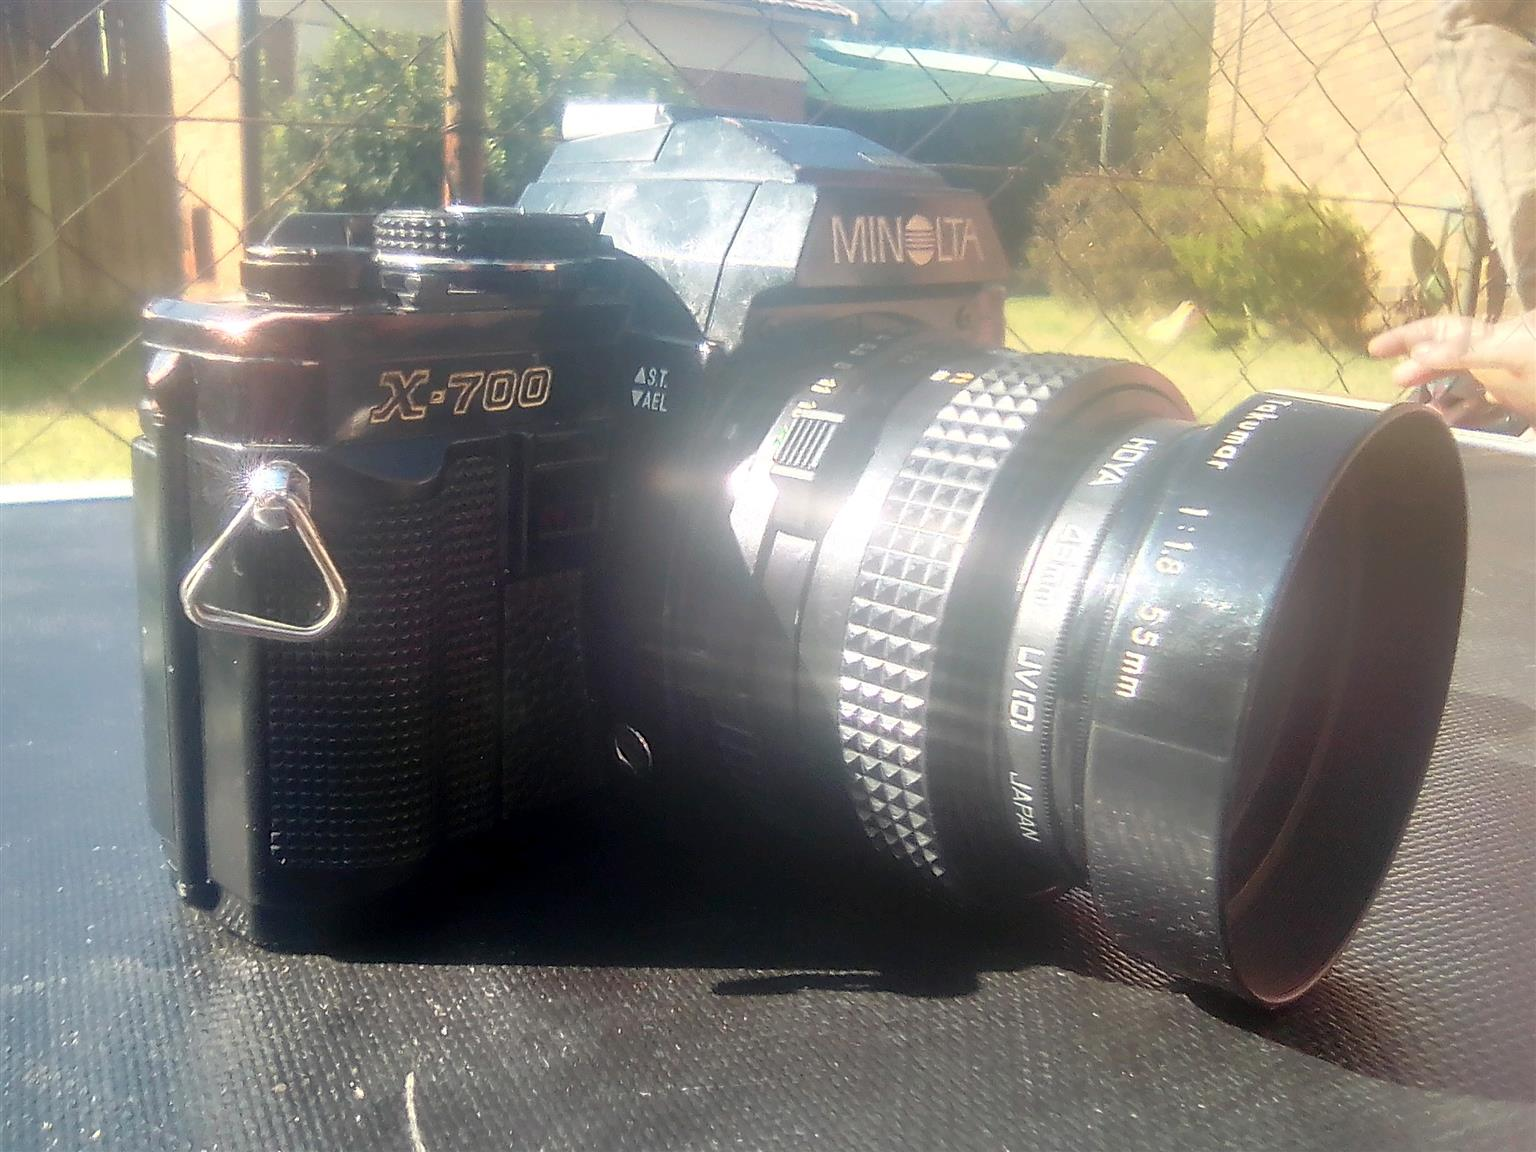 MINOLTA X-700 MPS WITH 50MM LENSE INCLUDED